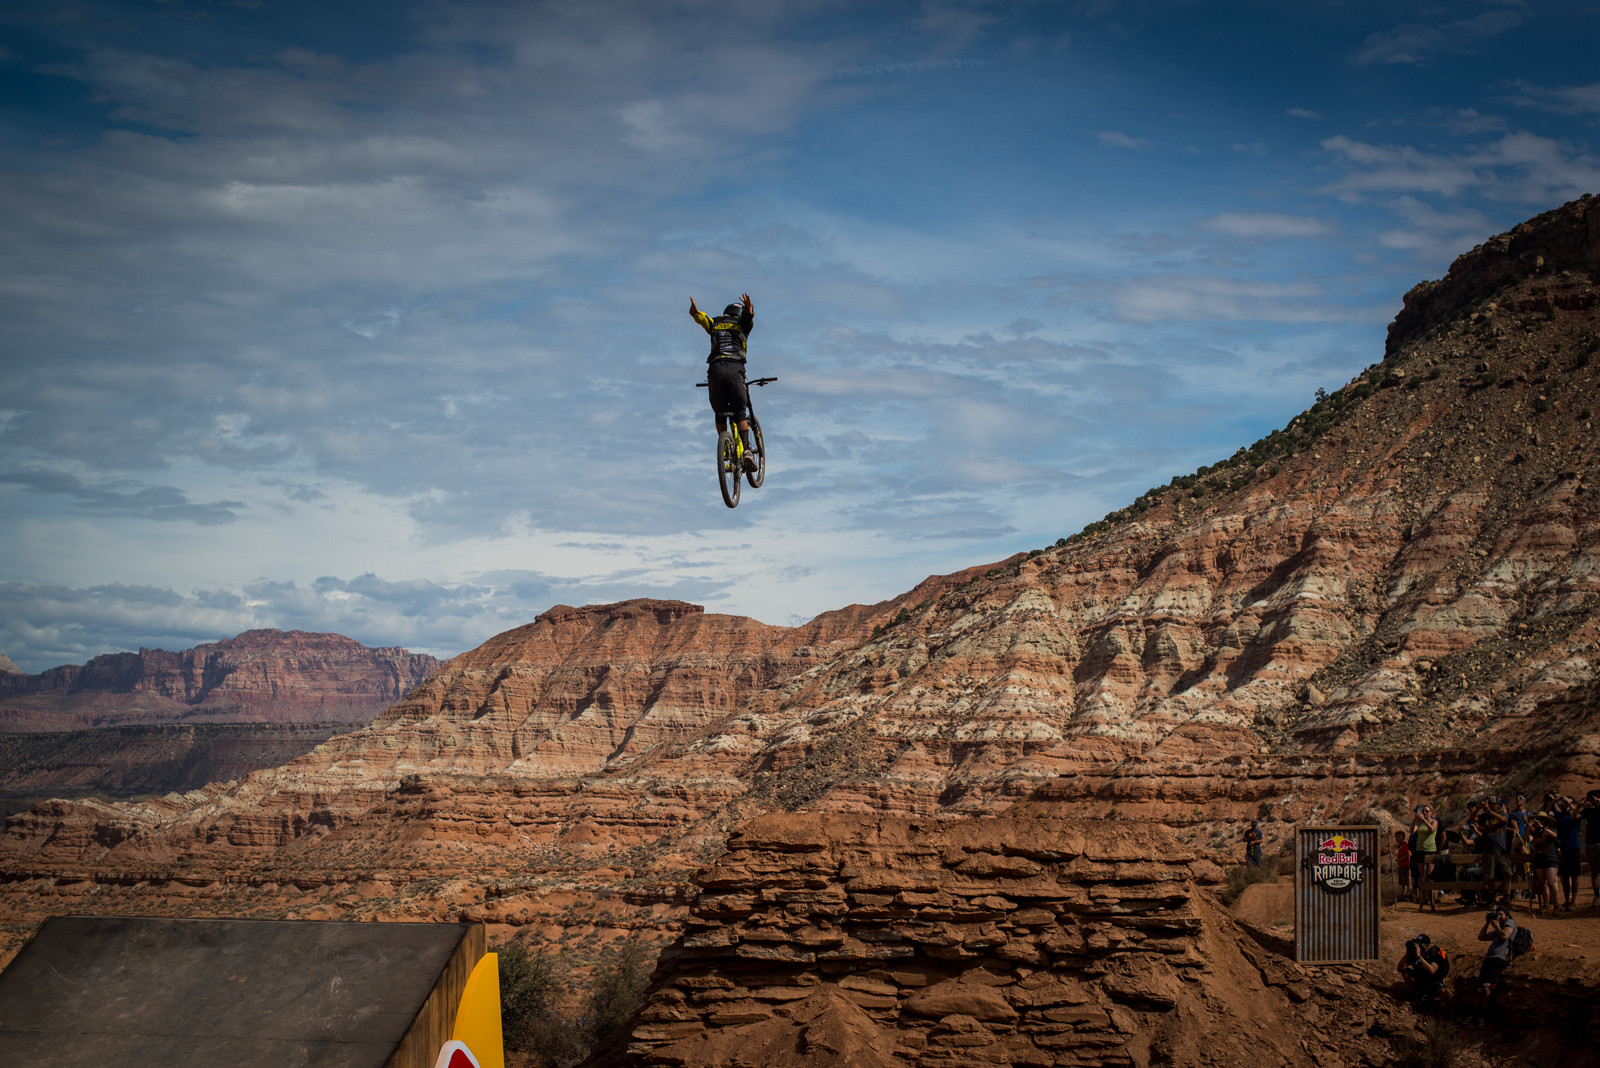 Remy Metailler - 2015 Red Bull Rampage Finals - Mountain Biking Pictures - Vital MTB